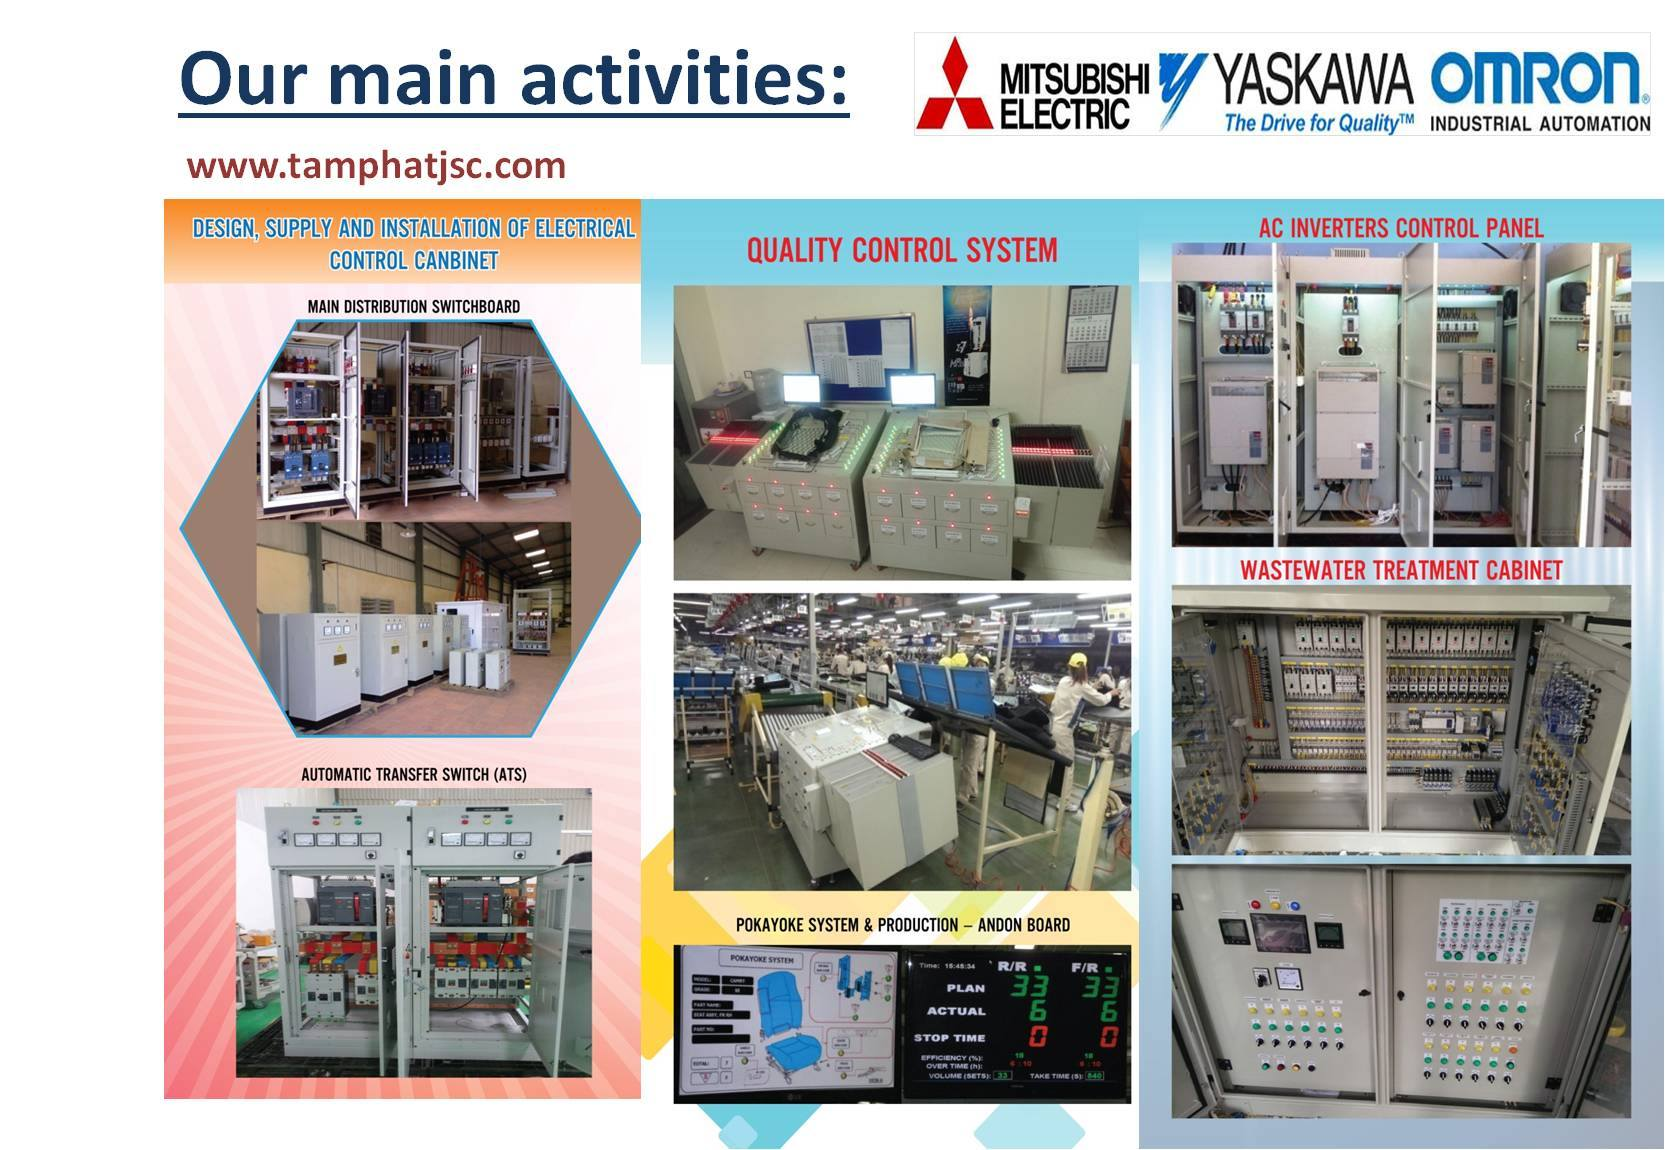 1. Automation Solutions.  / 2- Control panel building 3- PC, PLC-HMI software developments 4- Authorized distributor of Automationproducts: Omron - Mitsubishi electric - Yaskawa